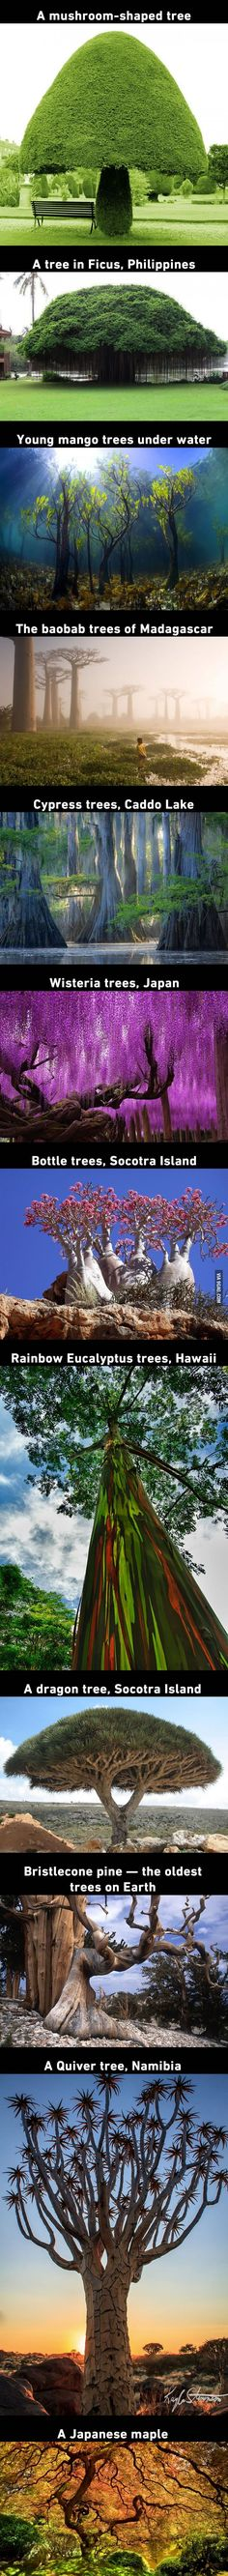 12 Beautiful Trees That You'd Thought They Grow On Pandora From Avatar - 9GAG